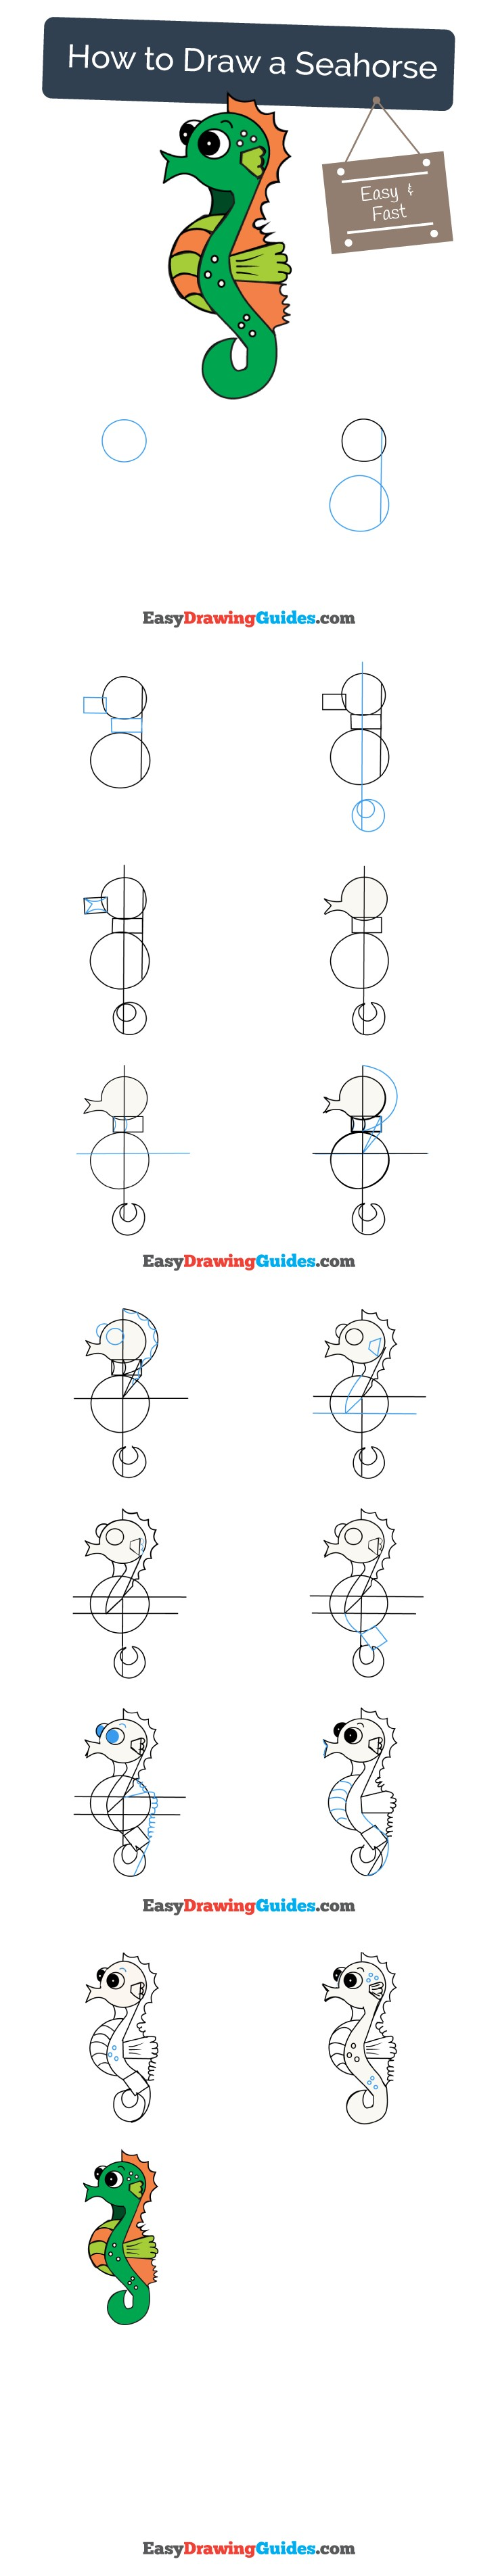 How to Draw a Seahorse Step by Step Pinterest